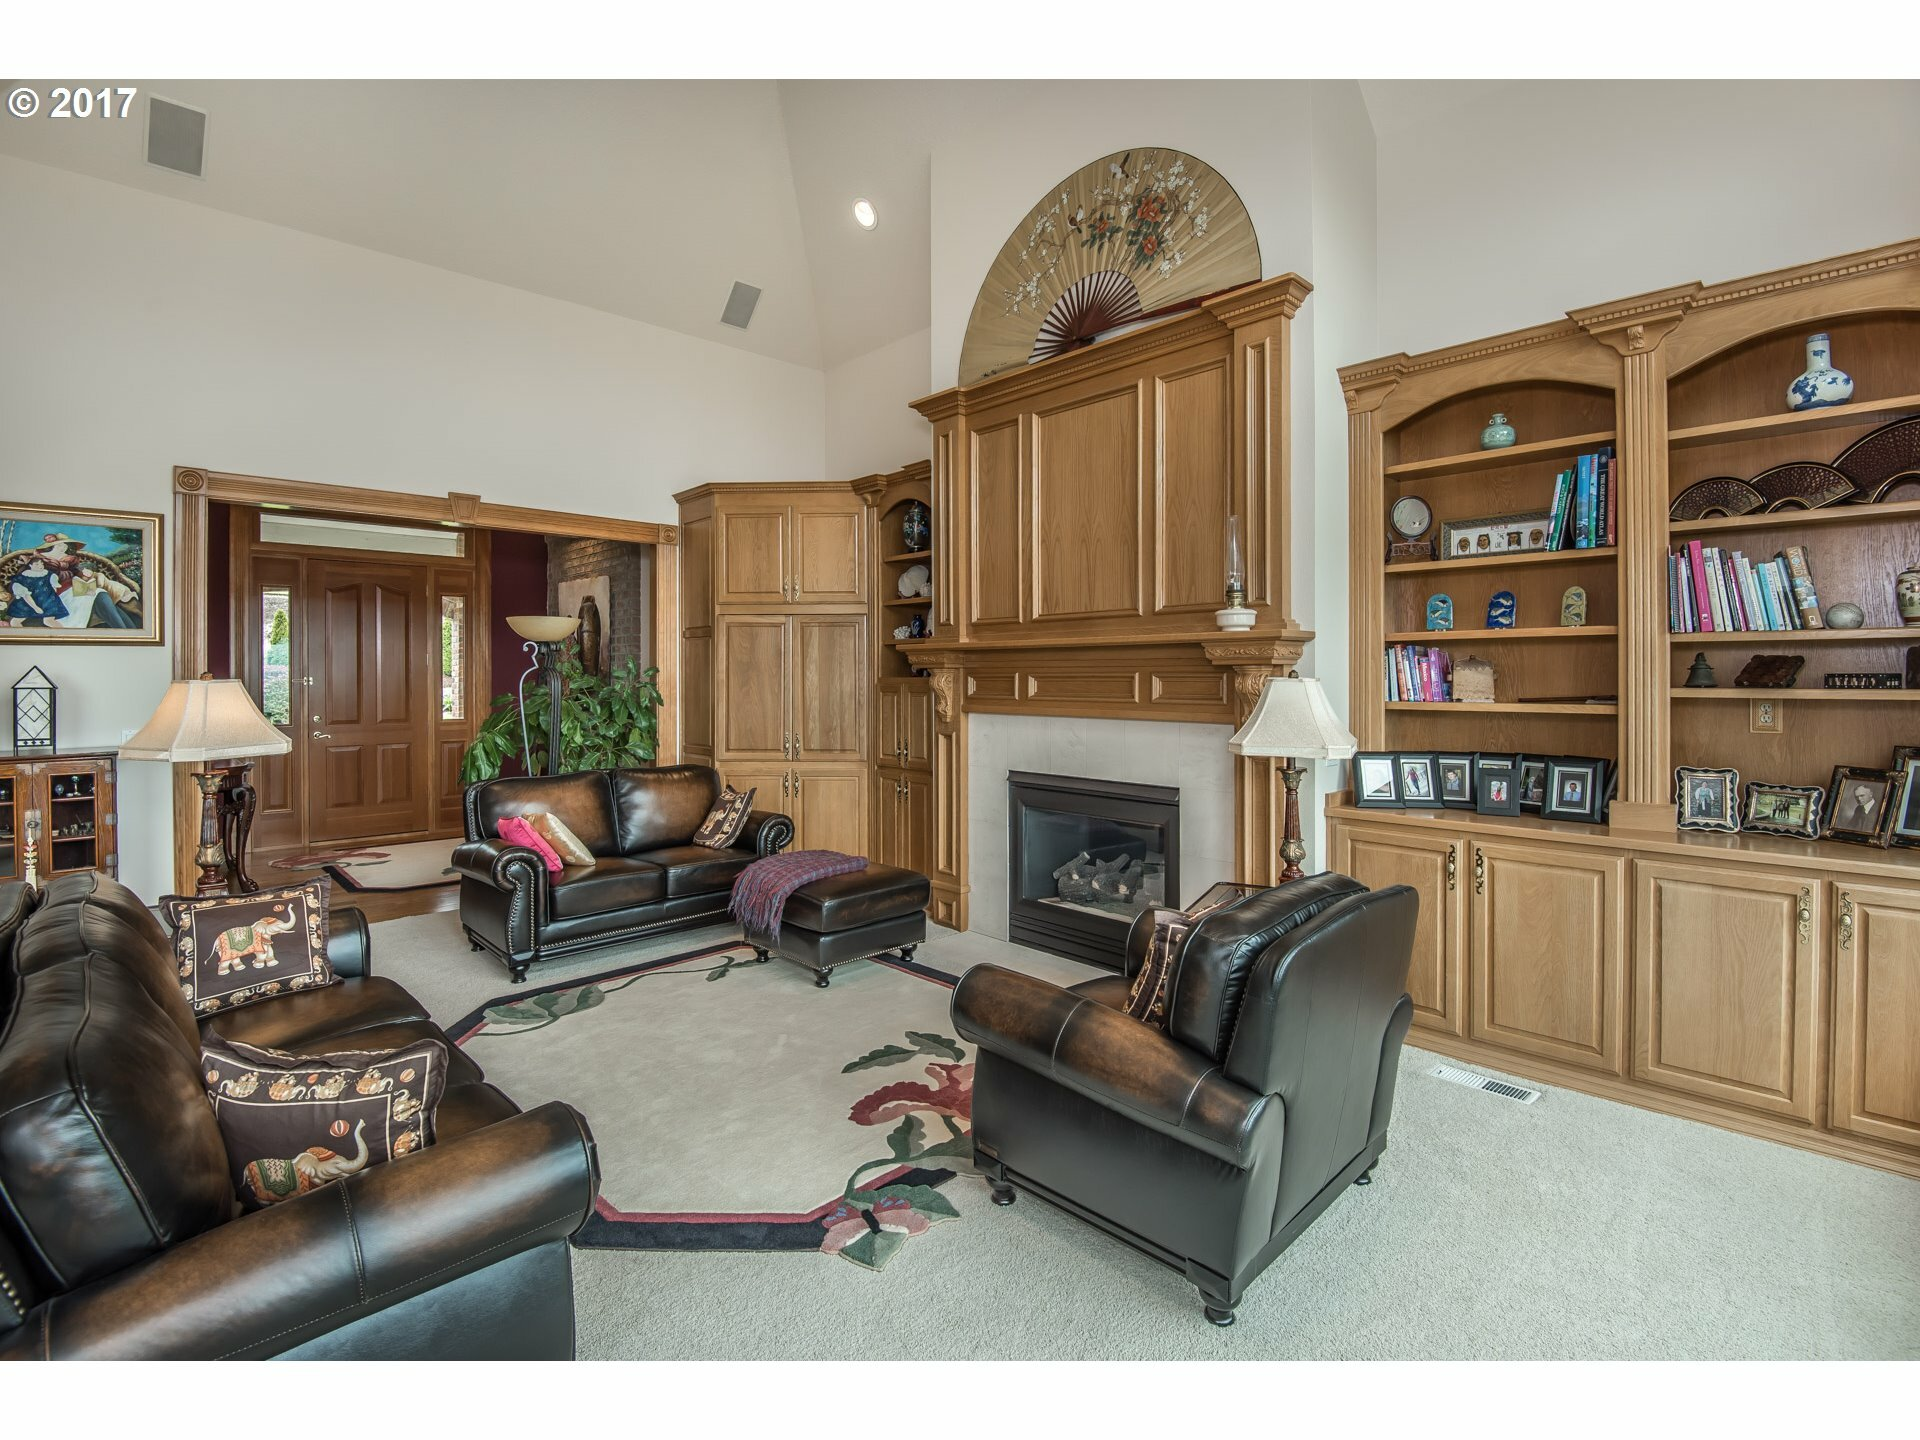 7774 Sw Millerglen Dr, Beaverton, OR - USA (photo 4)